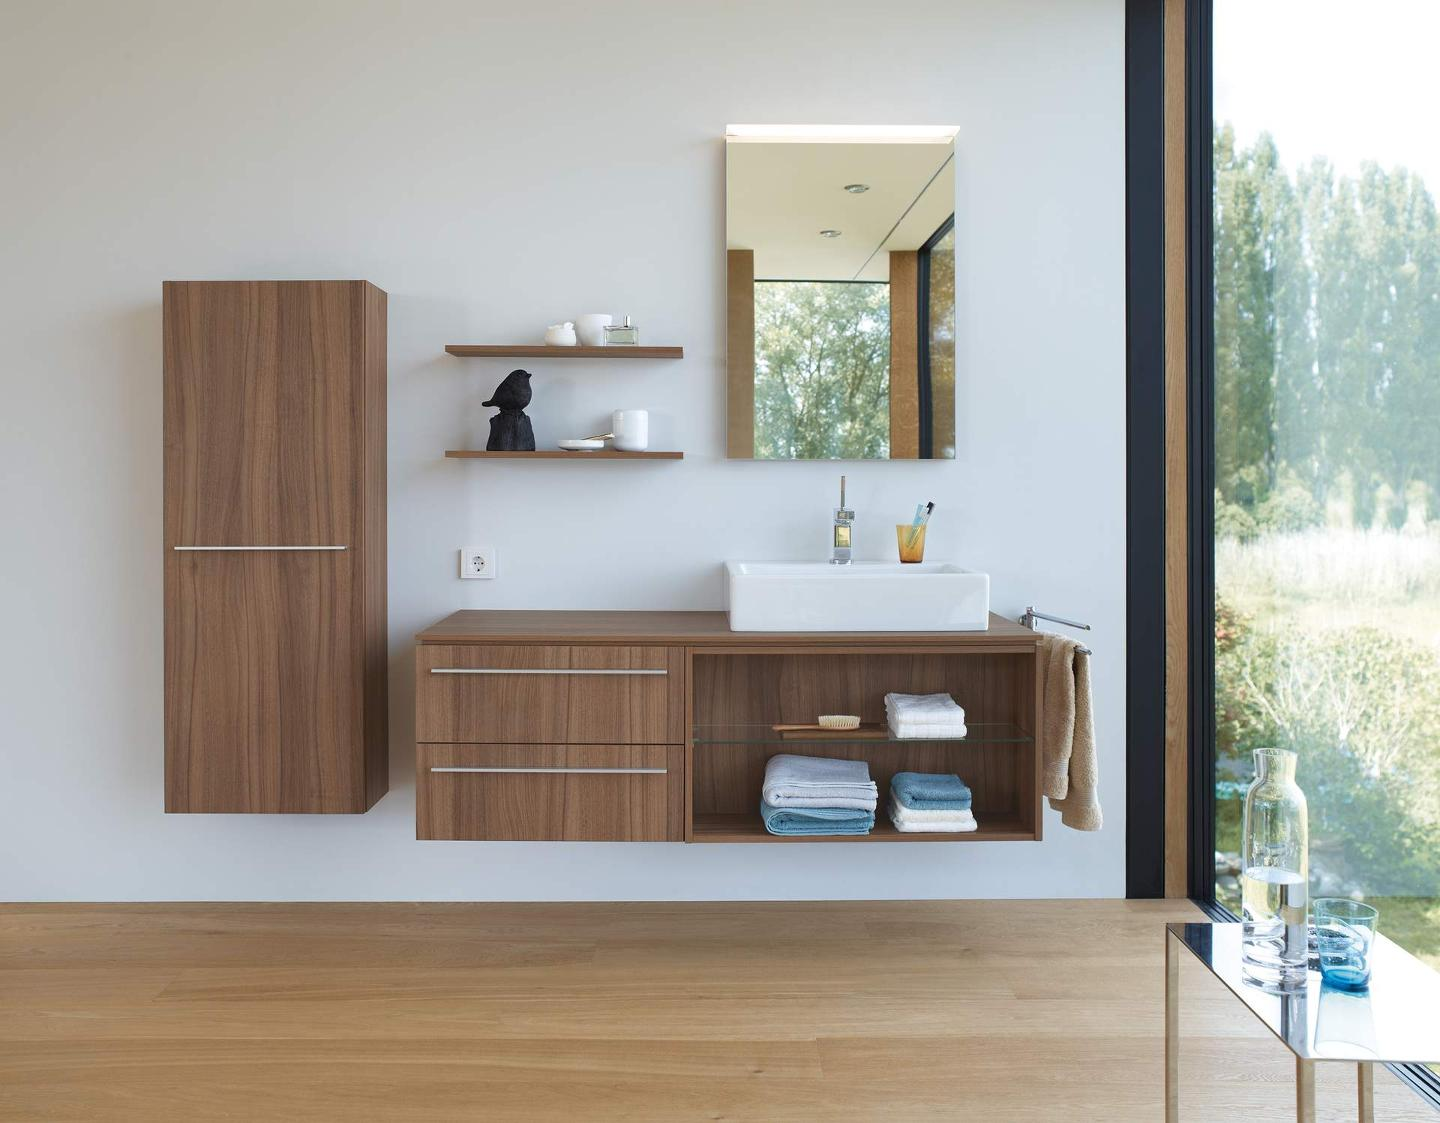 Duravit x large bathroom furniture with extra storage - Duravit bathroom furniture uk ...